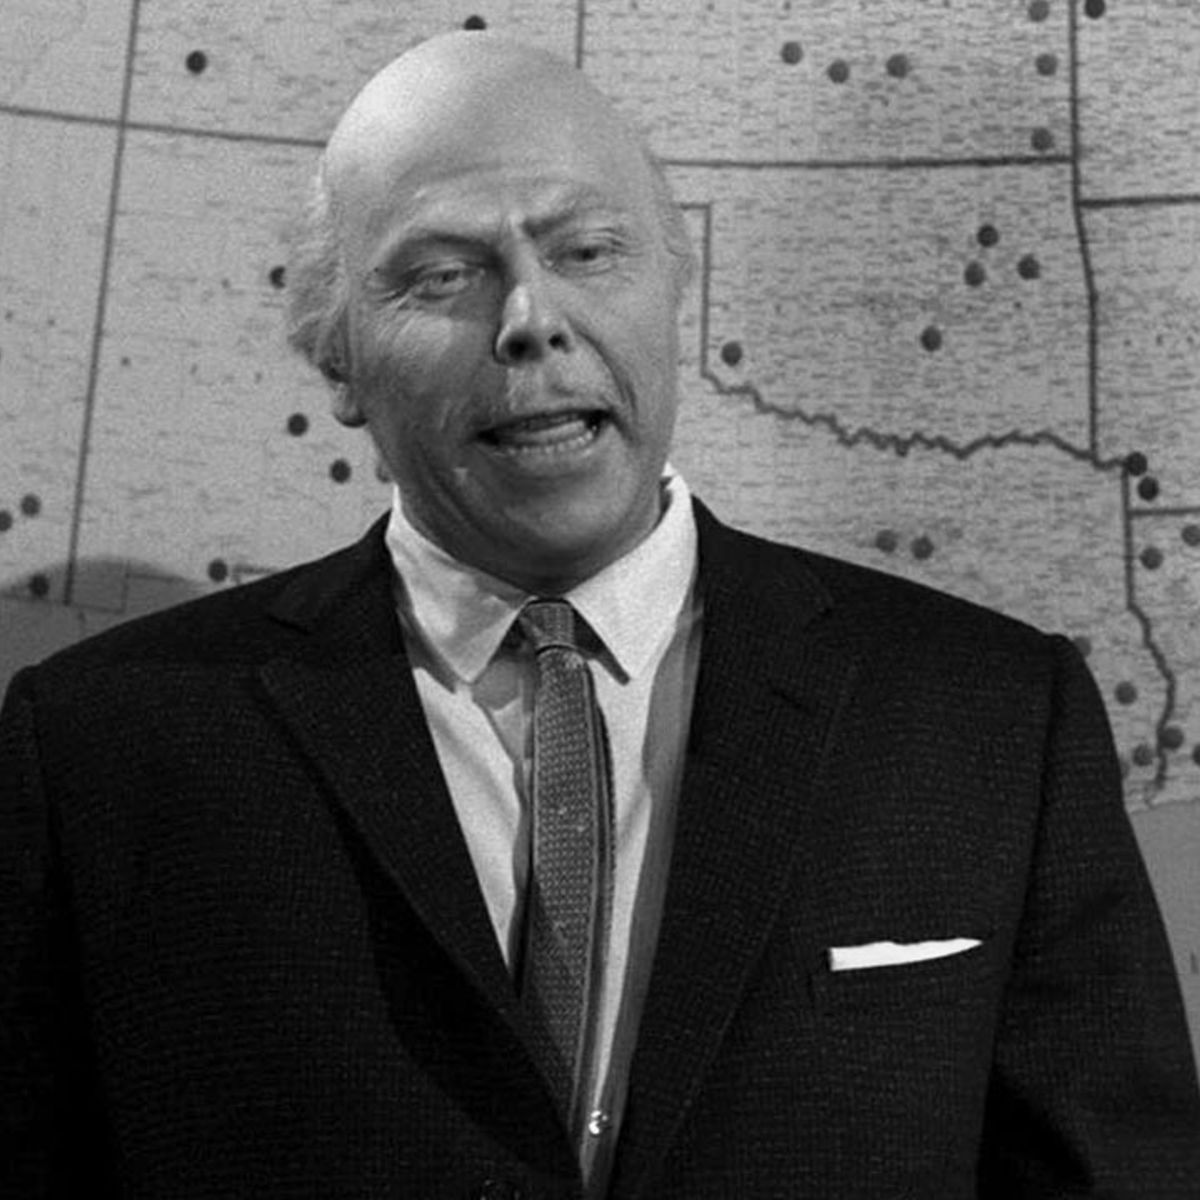 Twilight Zone Albert Salmi hero